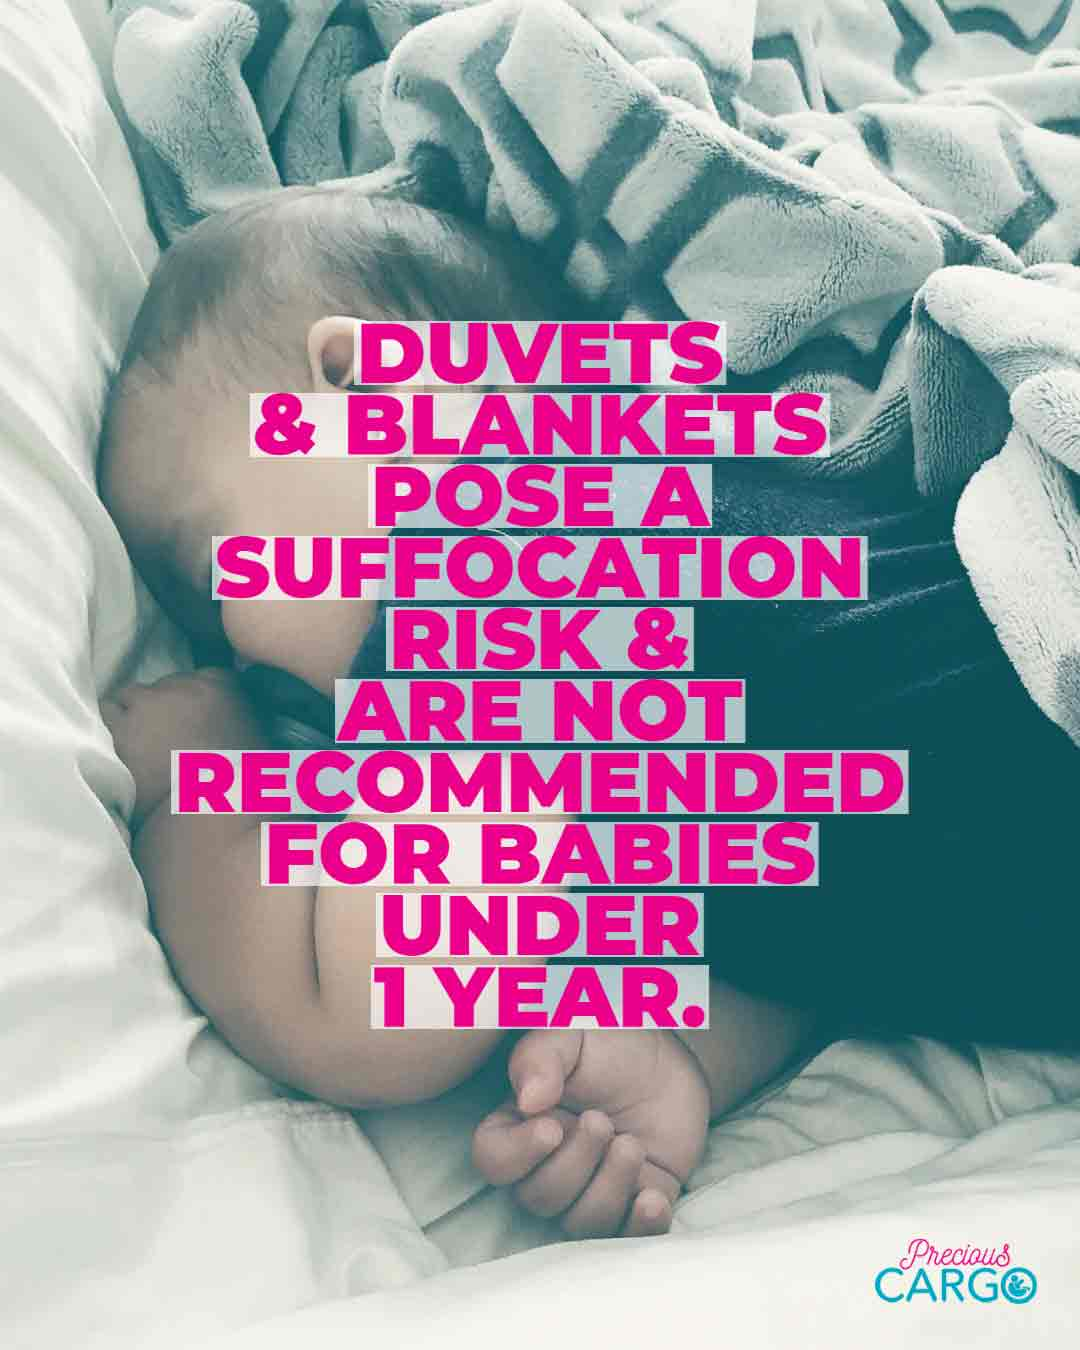 it is not safe to use duvet in baby's cot